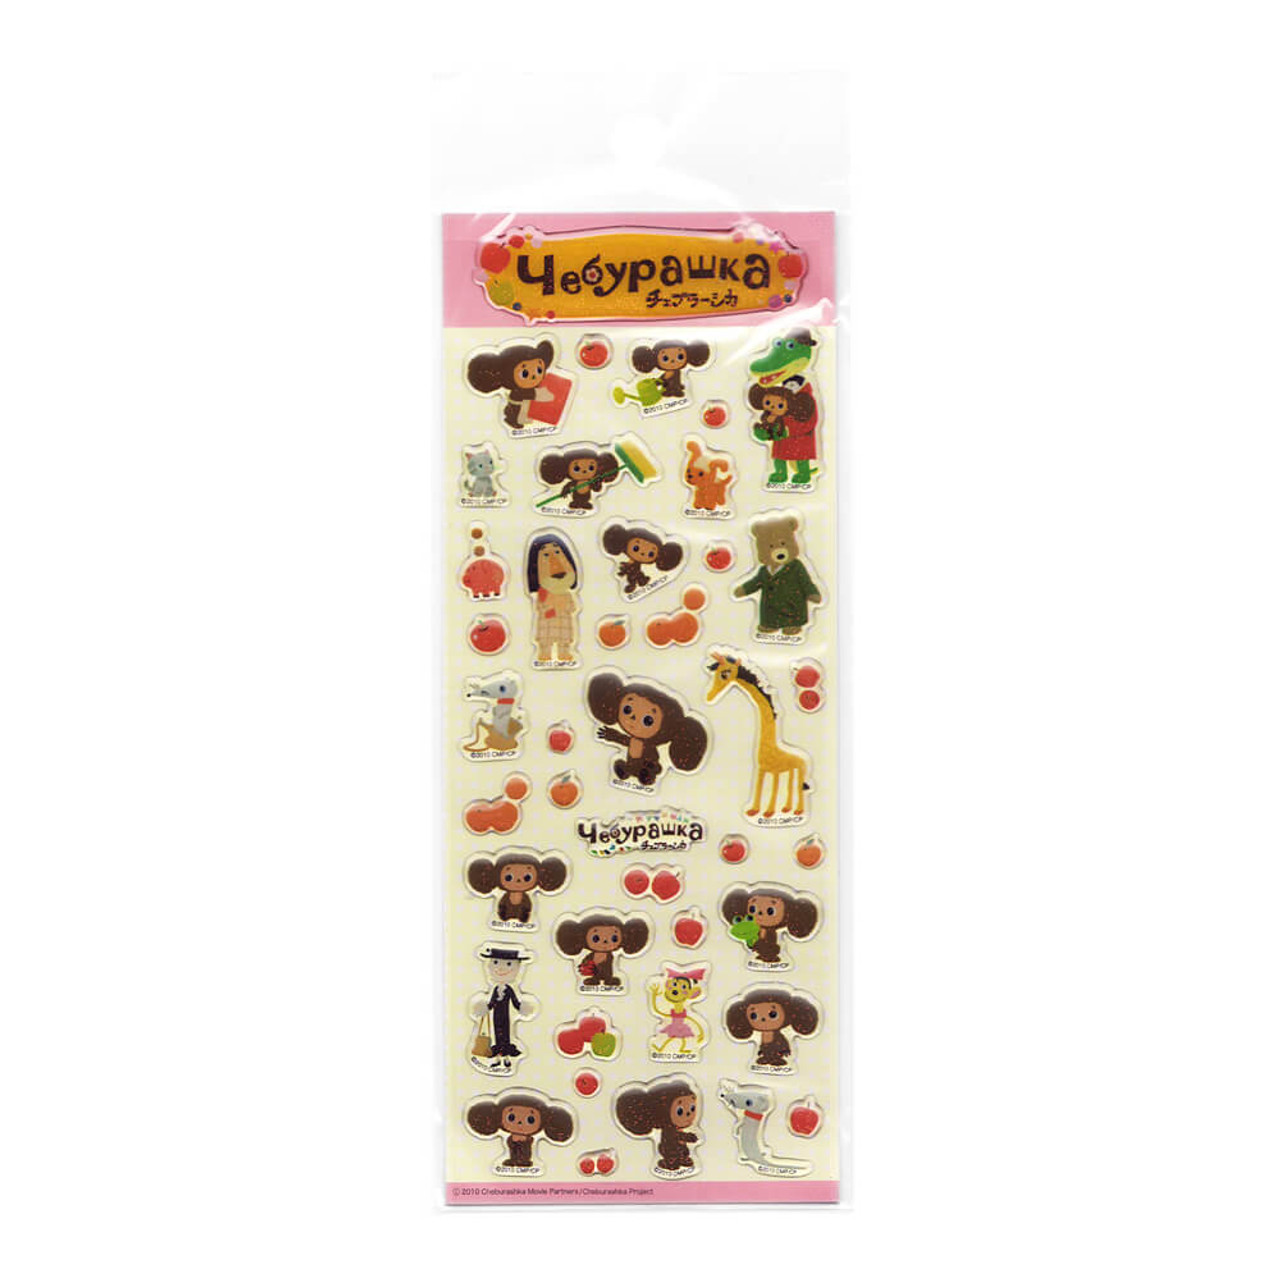 Cheburashka Yeoypawka 3D Puffy Sticker CHST03 - Zoo ( Full Sticker View )